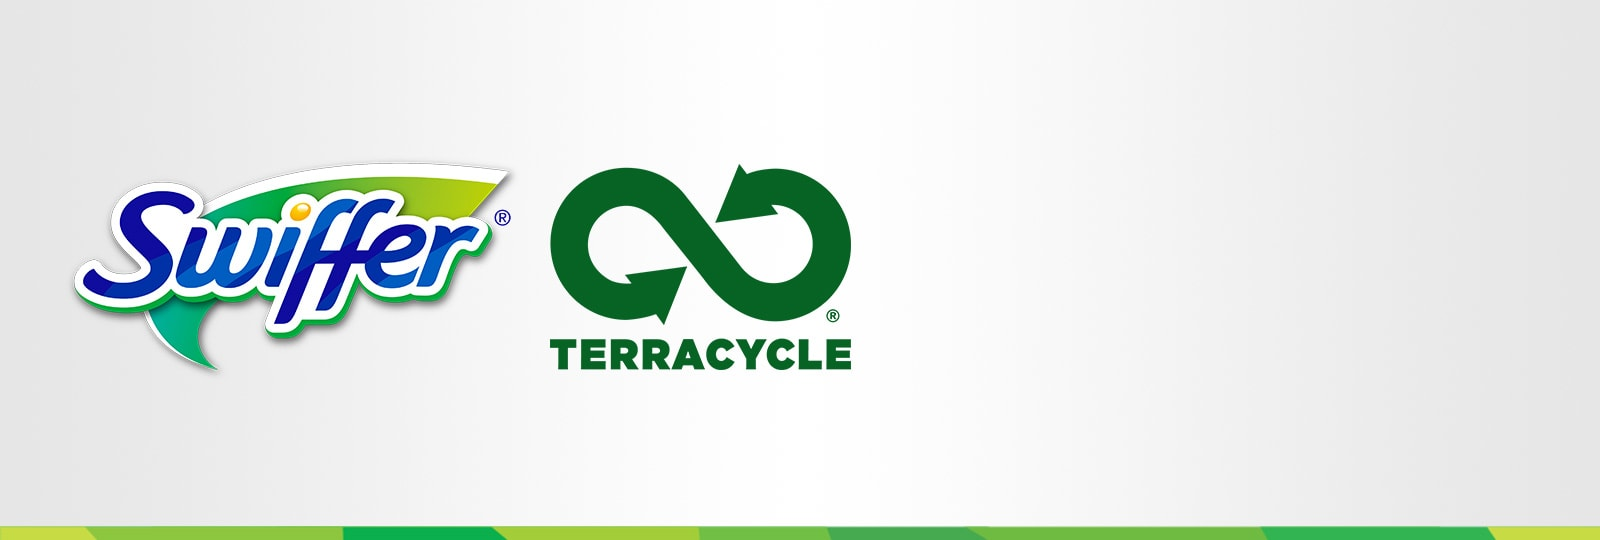 Recycle with Swiffer and Terracycle